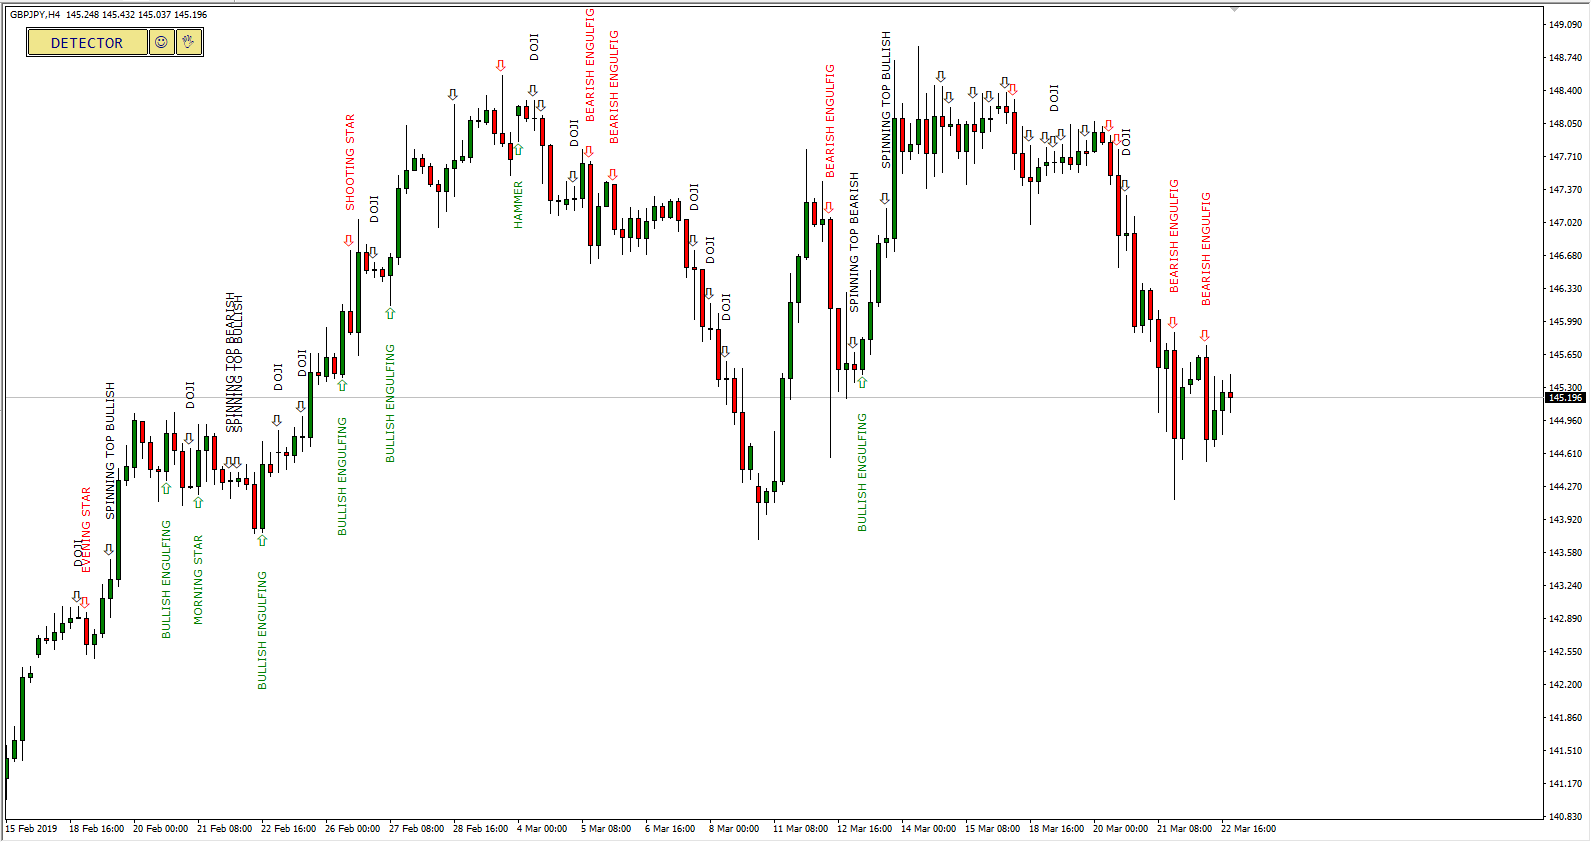 MT4 Candlestick Pattern Detector Indicator on GBP/JPY Currency Pair